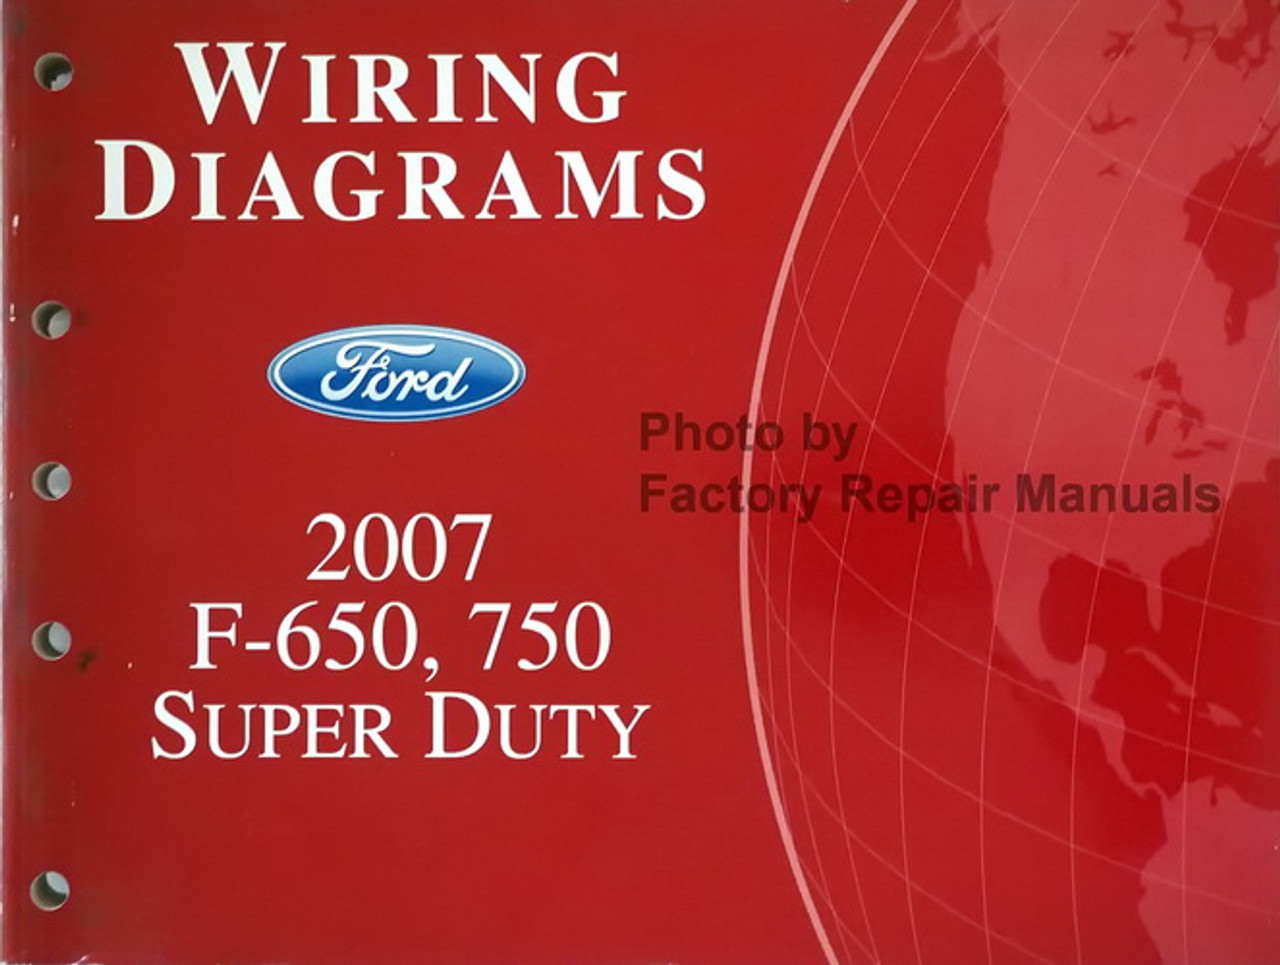 2007 Ford F650 F750 Truck Electrical Wiring Diagrams Manual Original -  Factory Repair Manuals | Ford F650 Super Duty Wire Diagram |  | Factory Repair Manuals